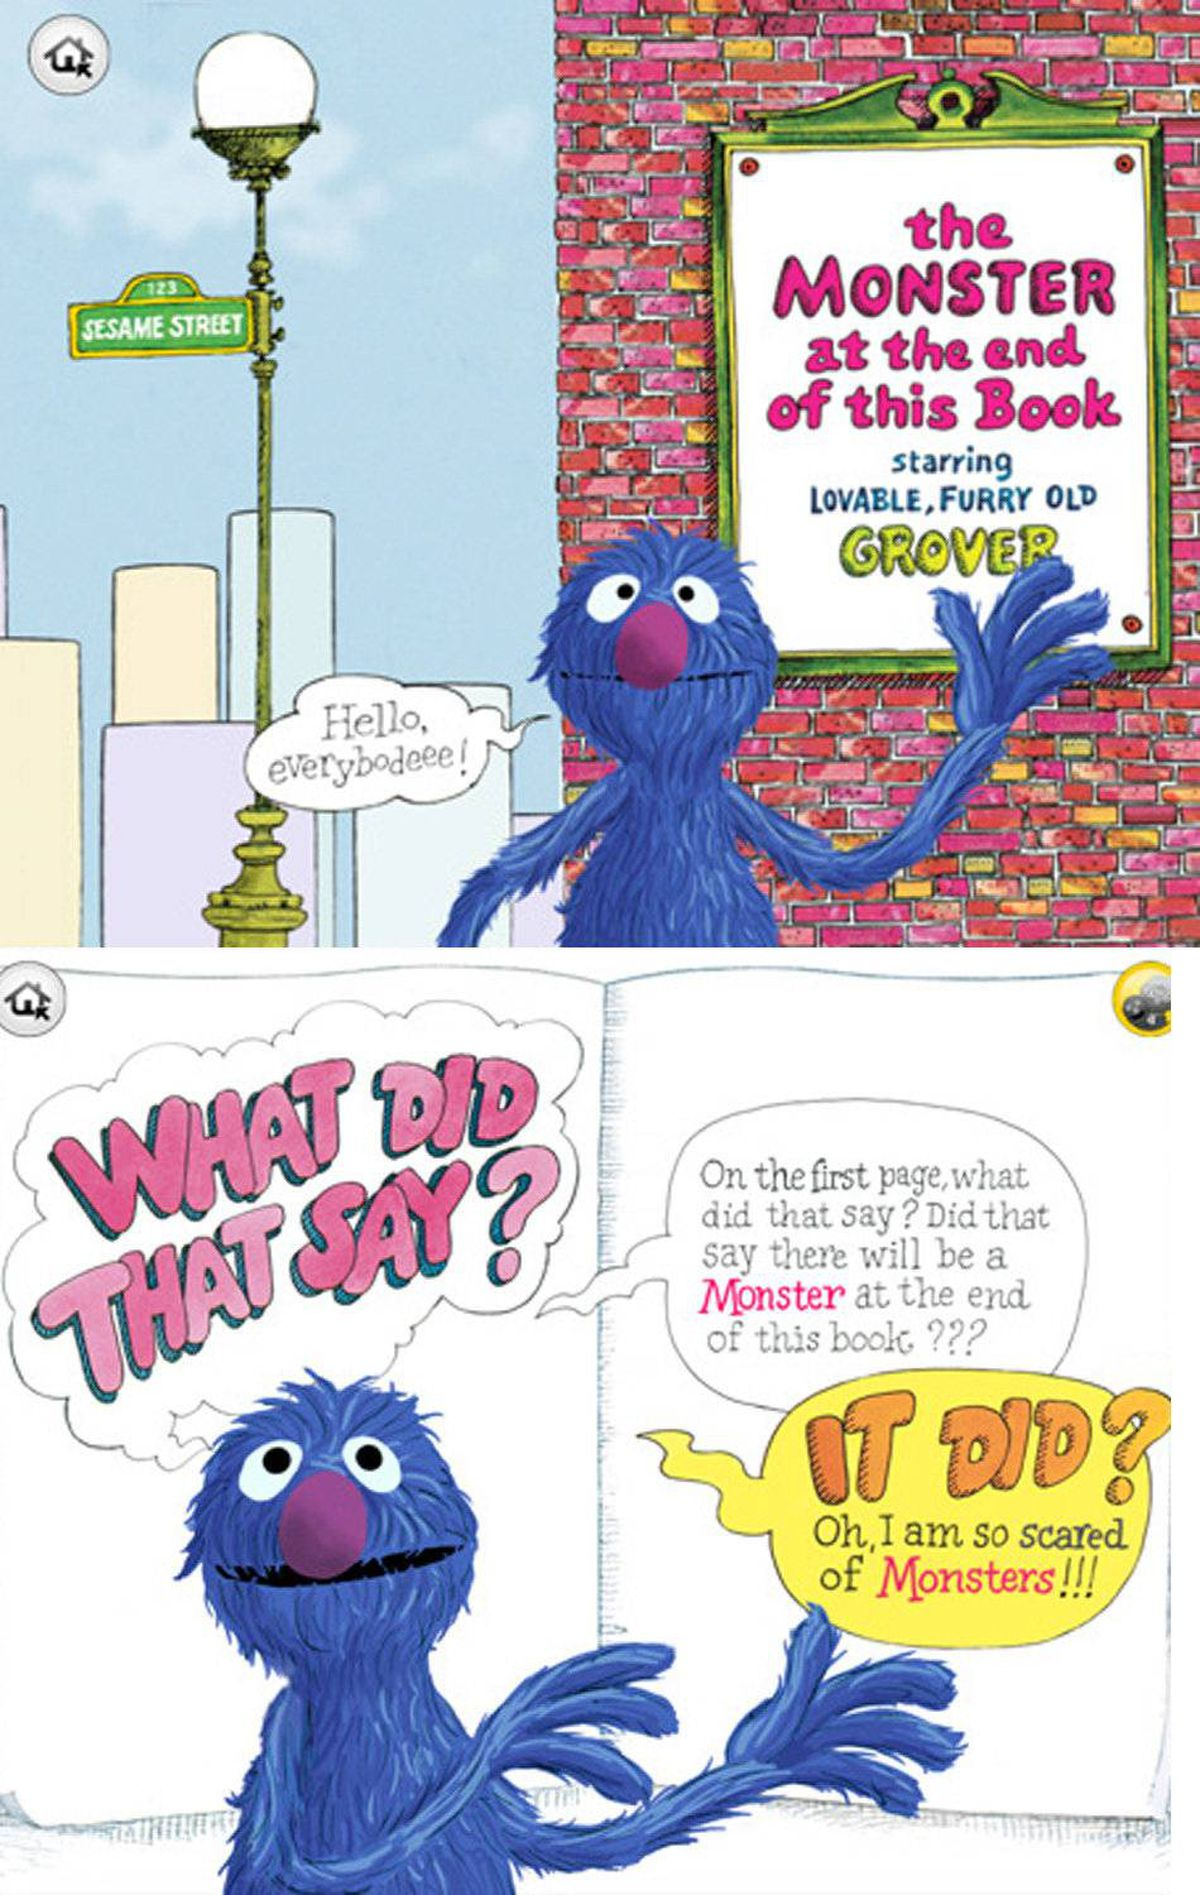 The Monster at the End of This Book (iPad/iPhone/iPod touch) What began as a book and became a book on tape is now a truly interactive experience. Join loveable furry old Grover as he ties down pages and build walls to protect himself and the reader from the monster at the end of the book. The app version of this Sesame Street classic adds narration, animation, and interactive play to the original story. When you tap on Grover, he talks to you. As the story is read aloud, word highlighting helps to build beginning reader skills. This universal app works on both the big screen iPad and the smaller screen iPhone or iPod touch. There are many other interactive storybooks in the app store, including classics filled with other familiar characters from Sesame Street, Disney, and more. ($3.99, http://www.callaway.com)